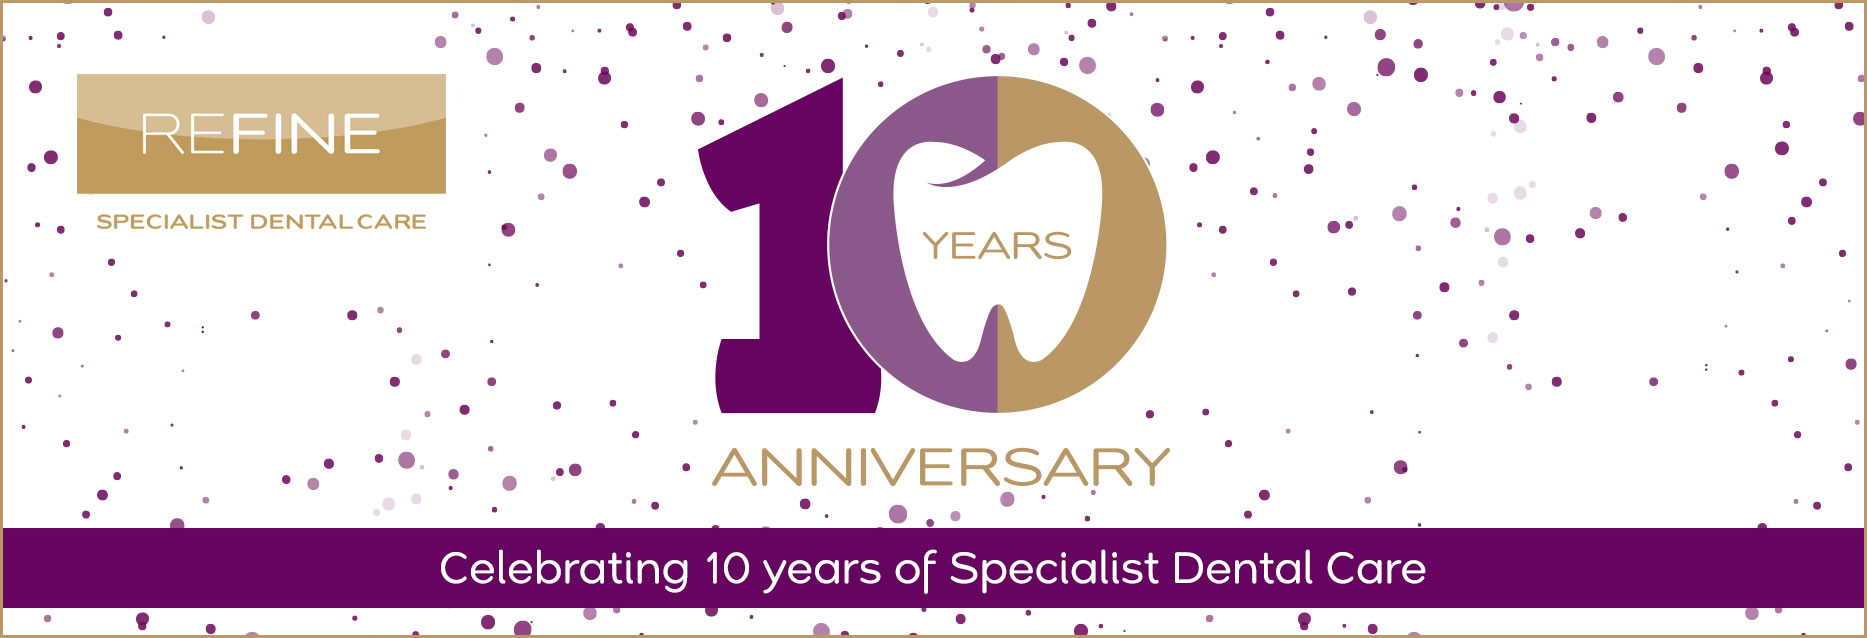 Celebrating 10 years of Refine Specialist Dental Care